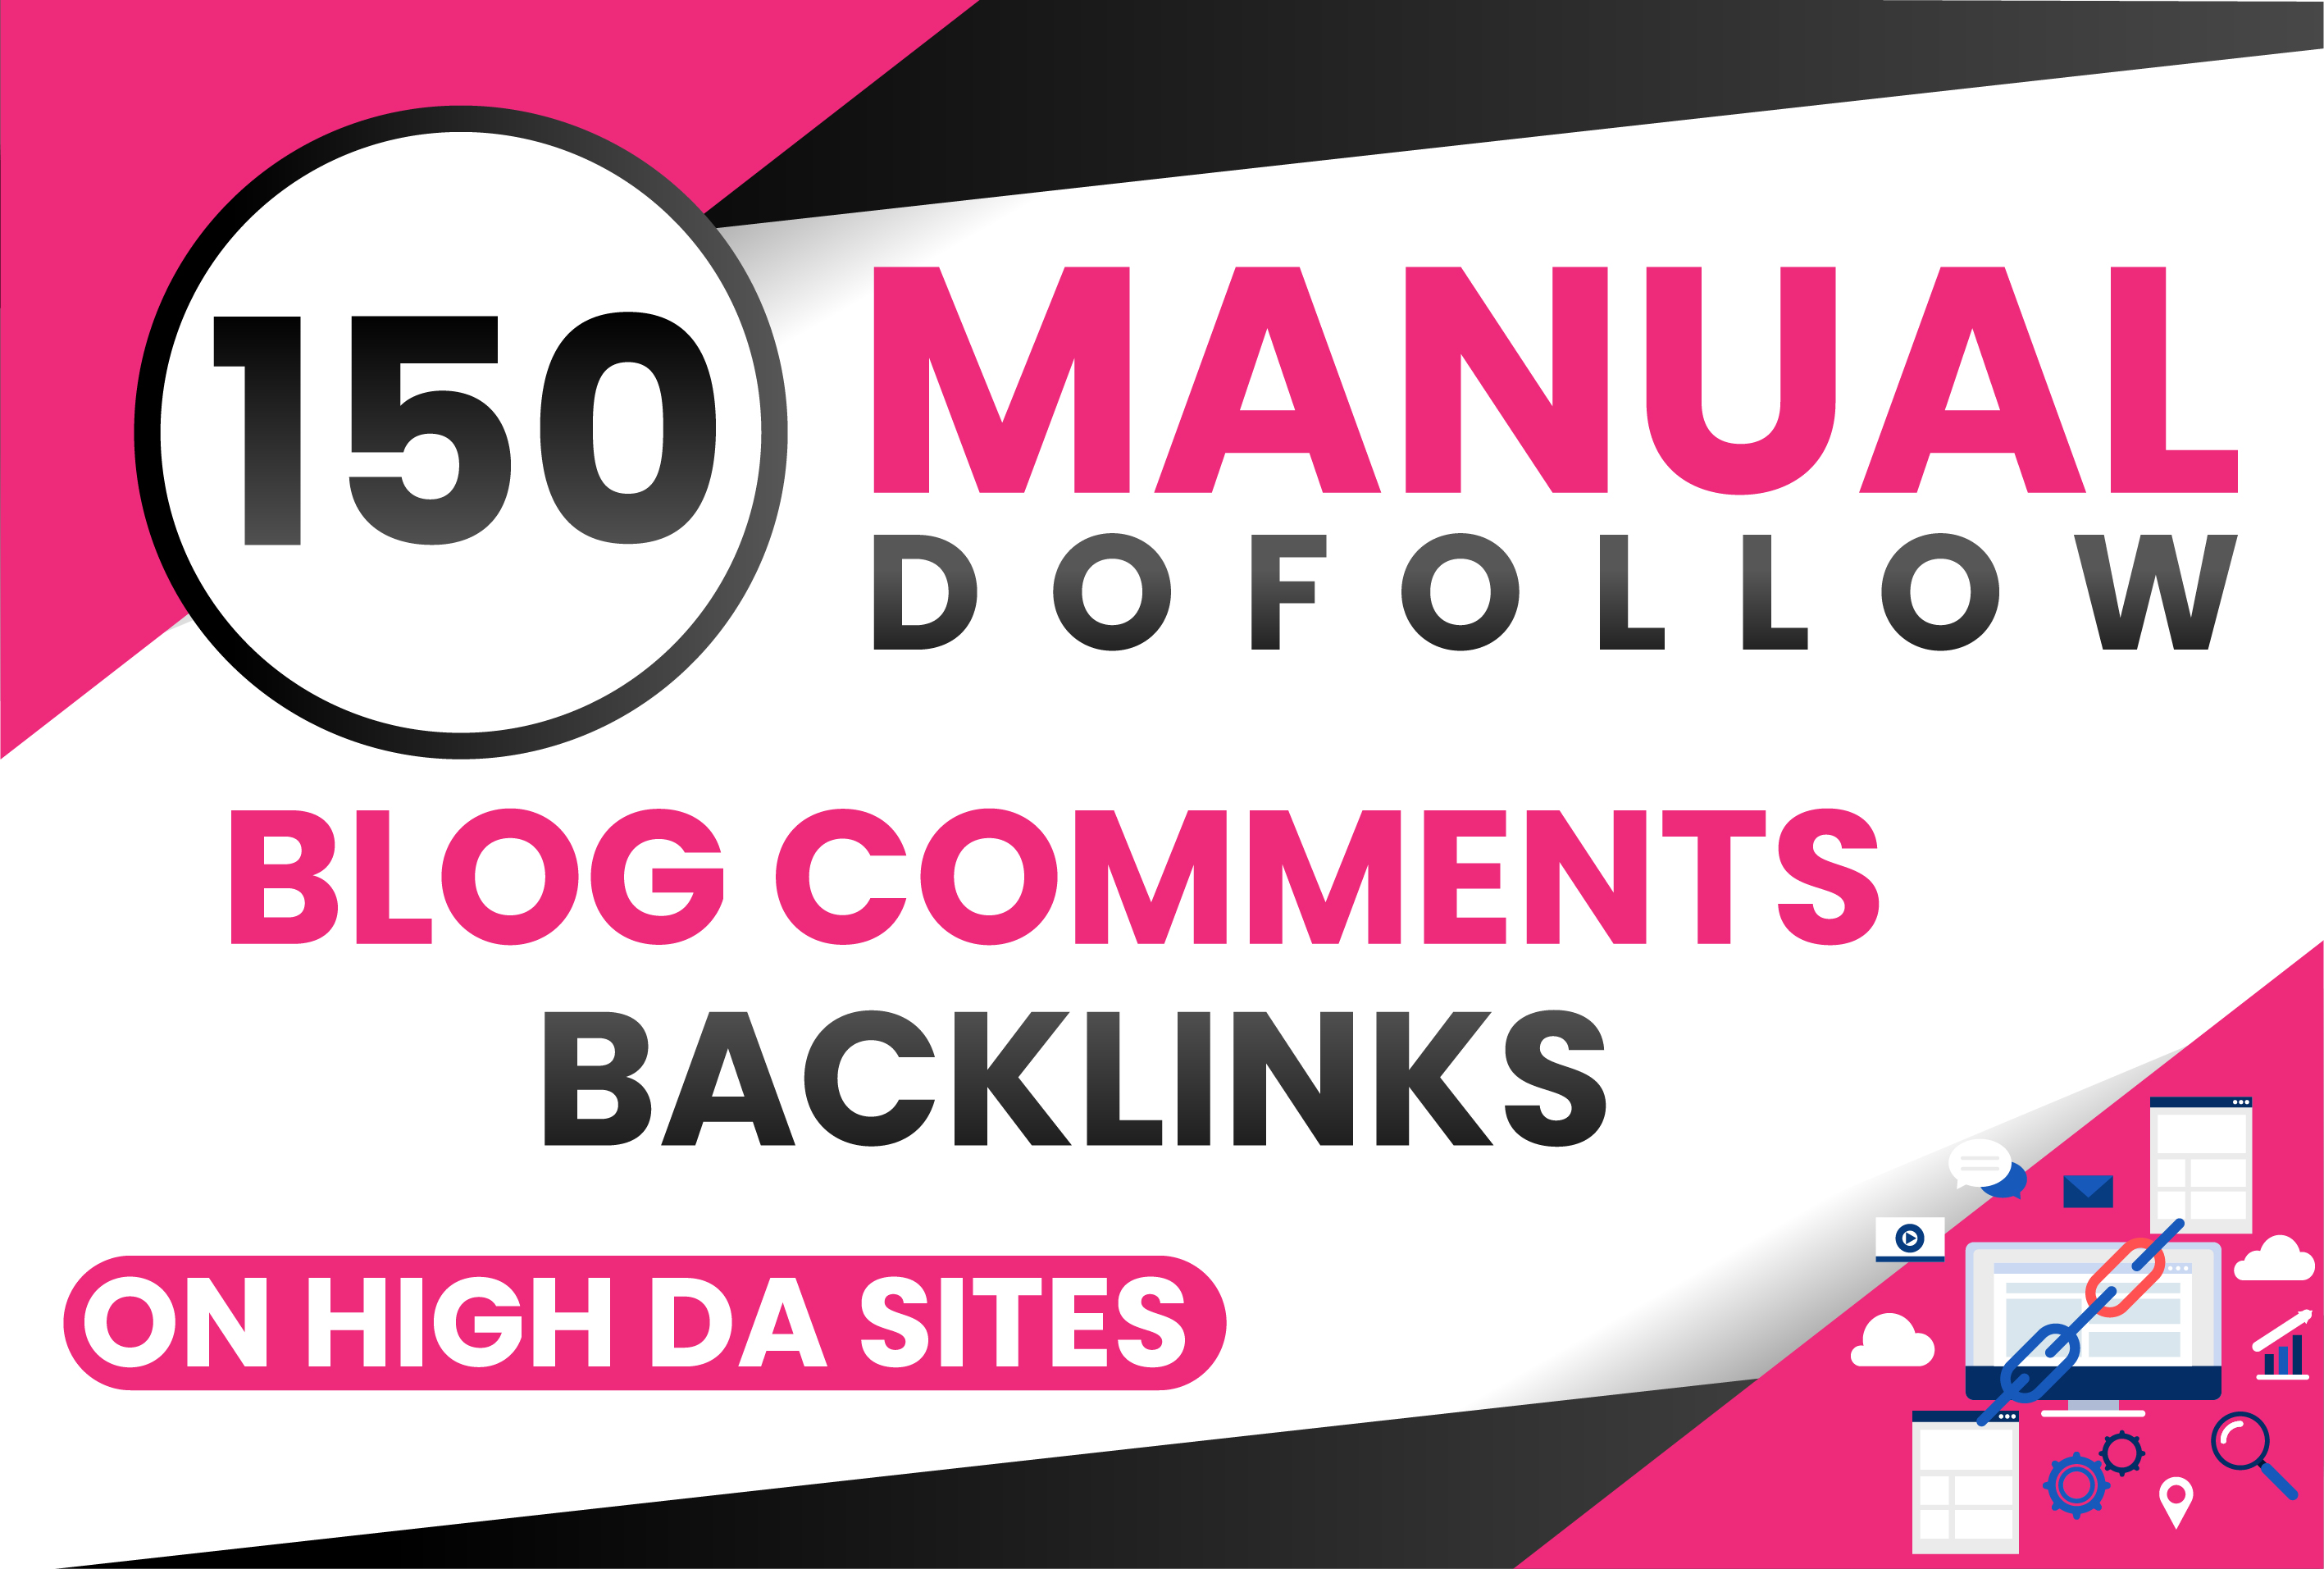 Get 150 MANUAL Dofollow Blog comments Backlinks on High DA Sites